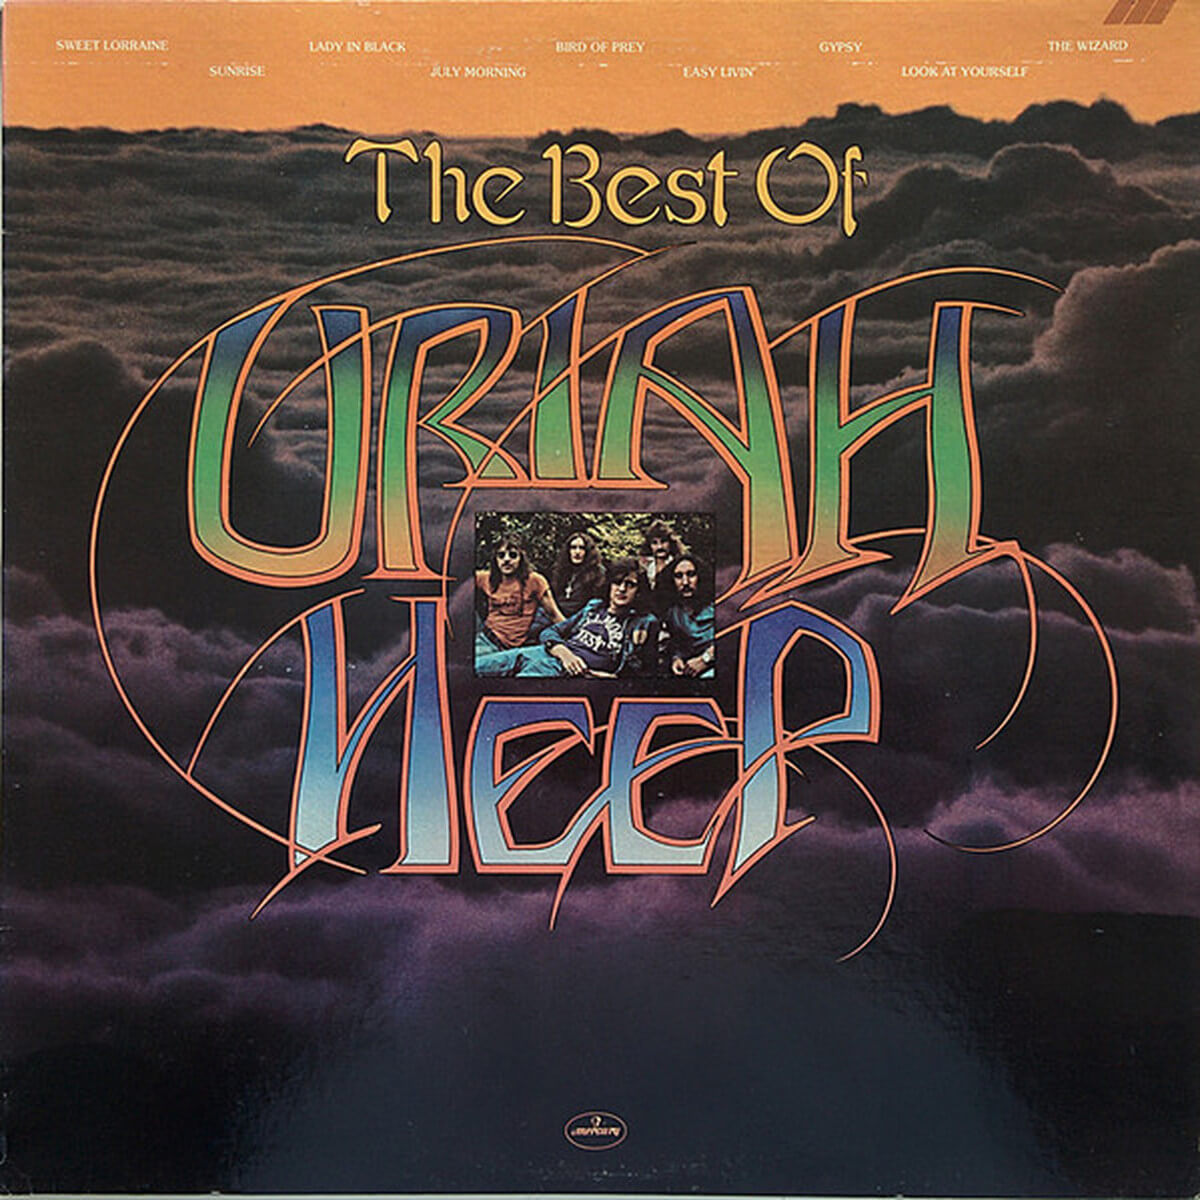 Uriah Heep - Te Best Of - Vinil Cover